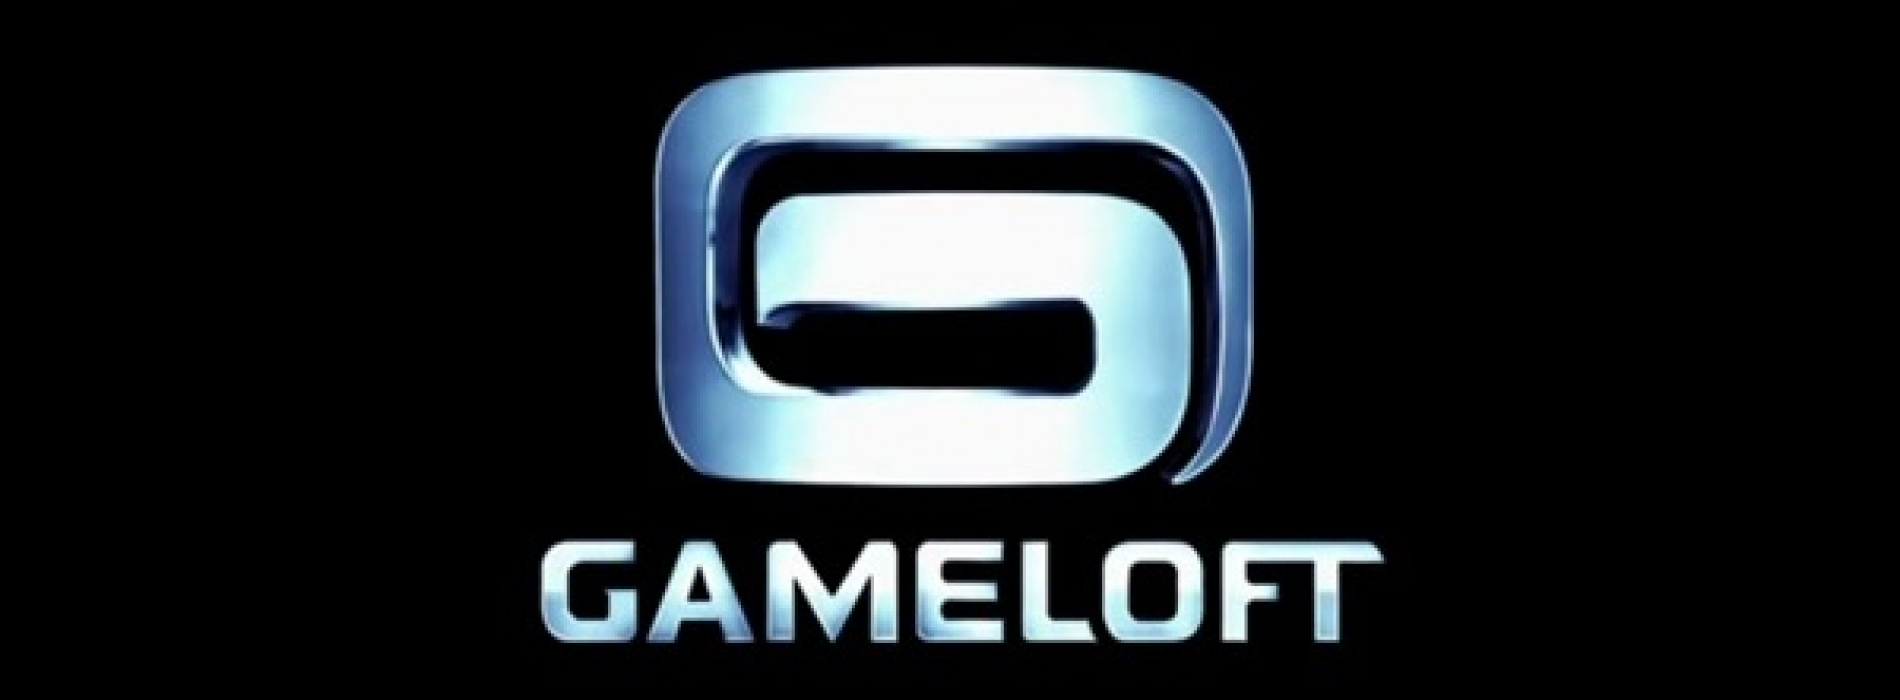 Gameloft: all future games to include in-app purchases